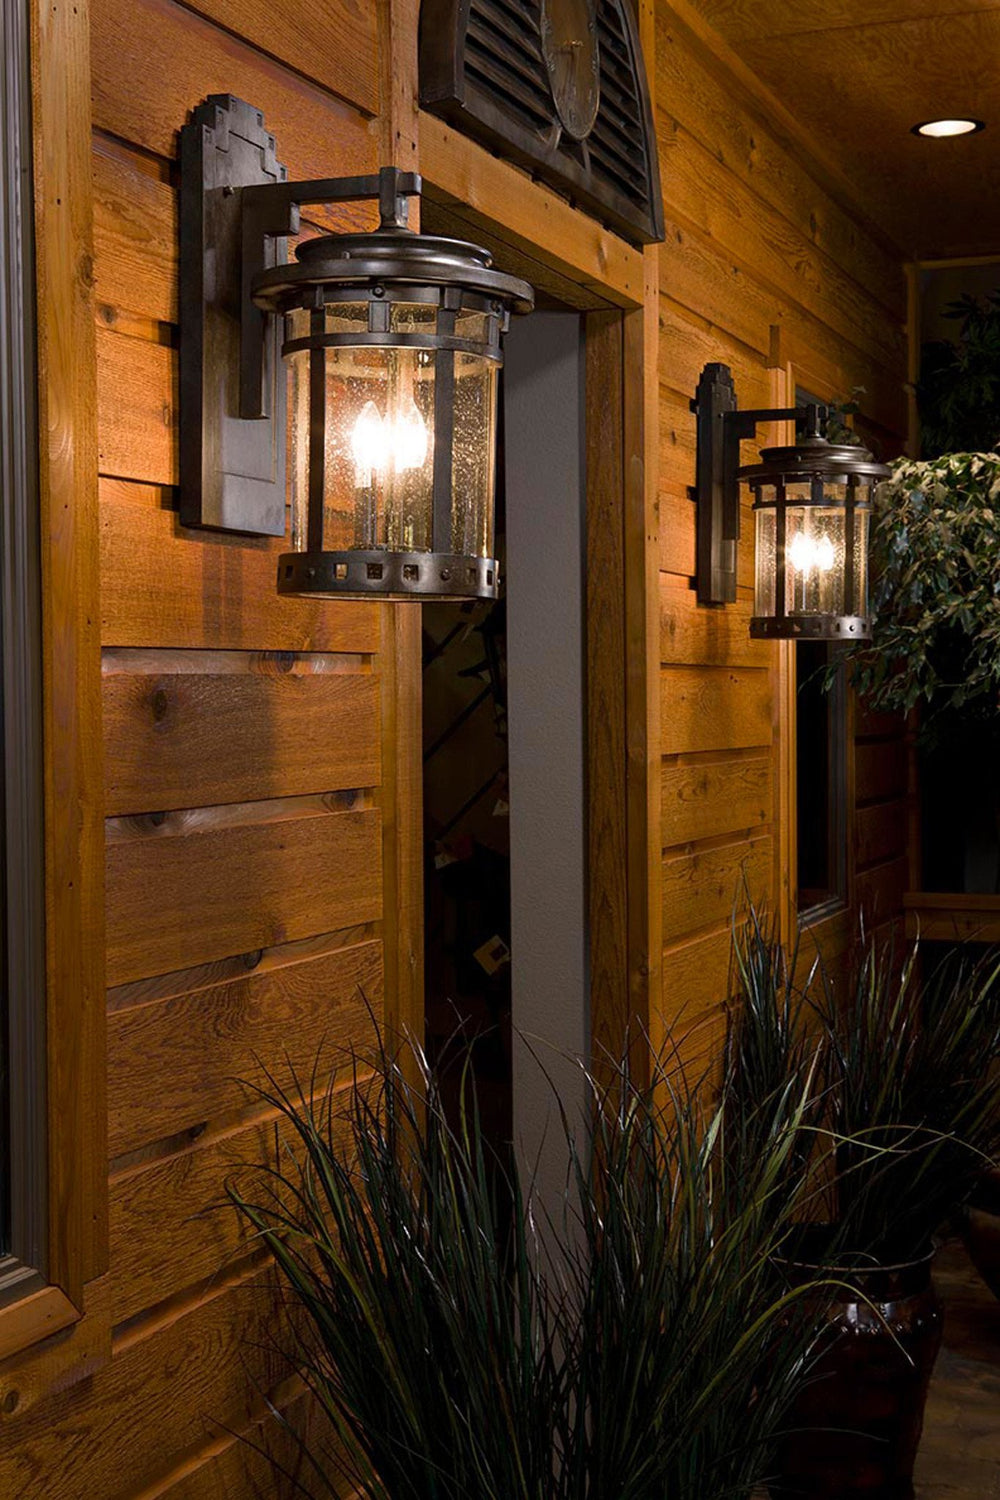 40031cdse Maxim Santa Barbara VX 3-Light Outdoor Deck Lantern